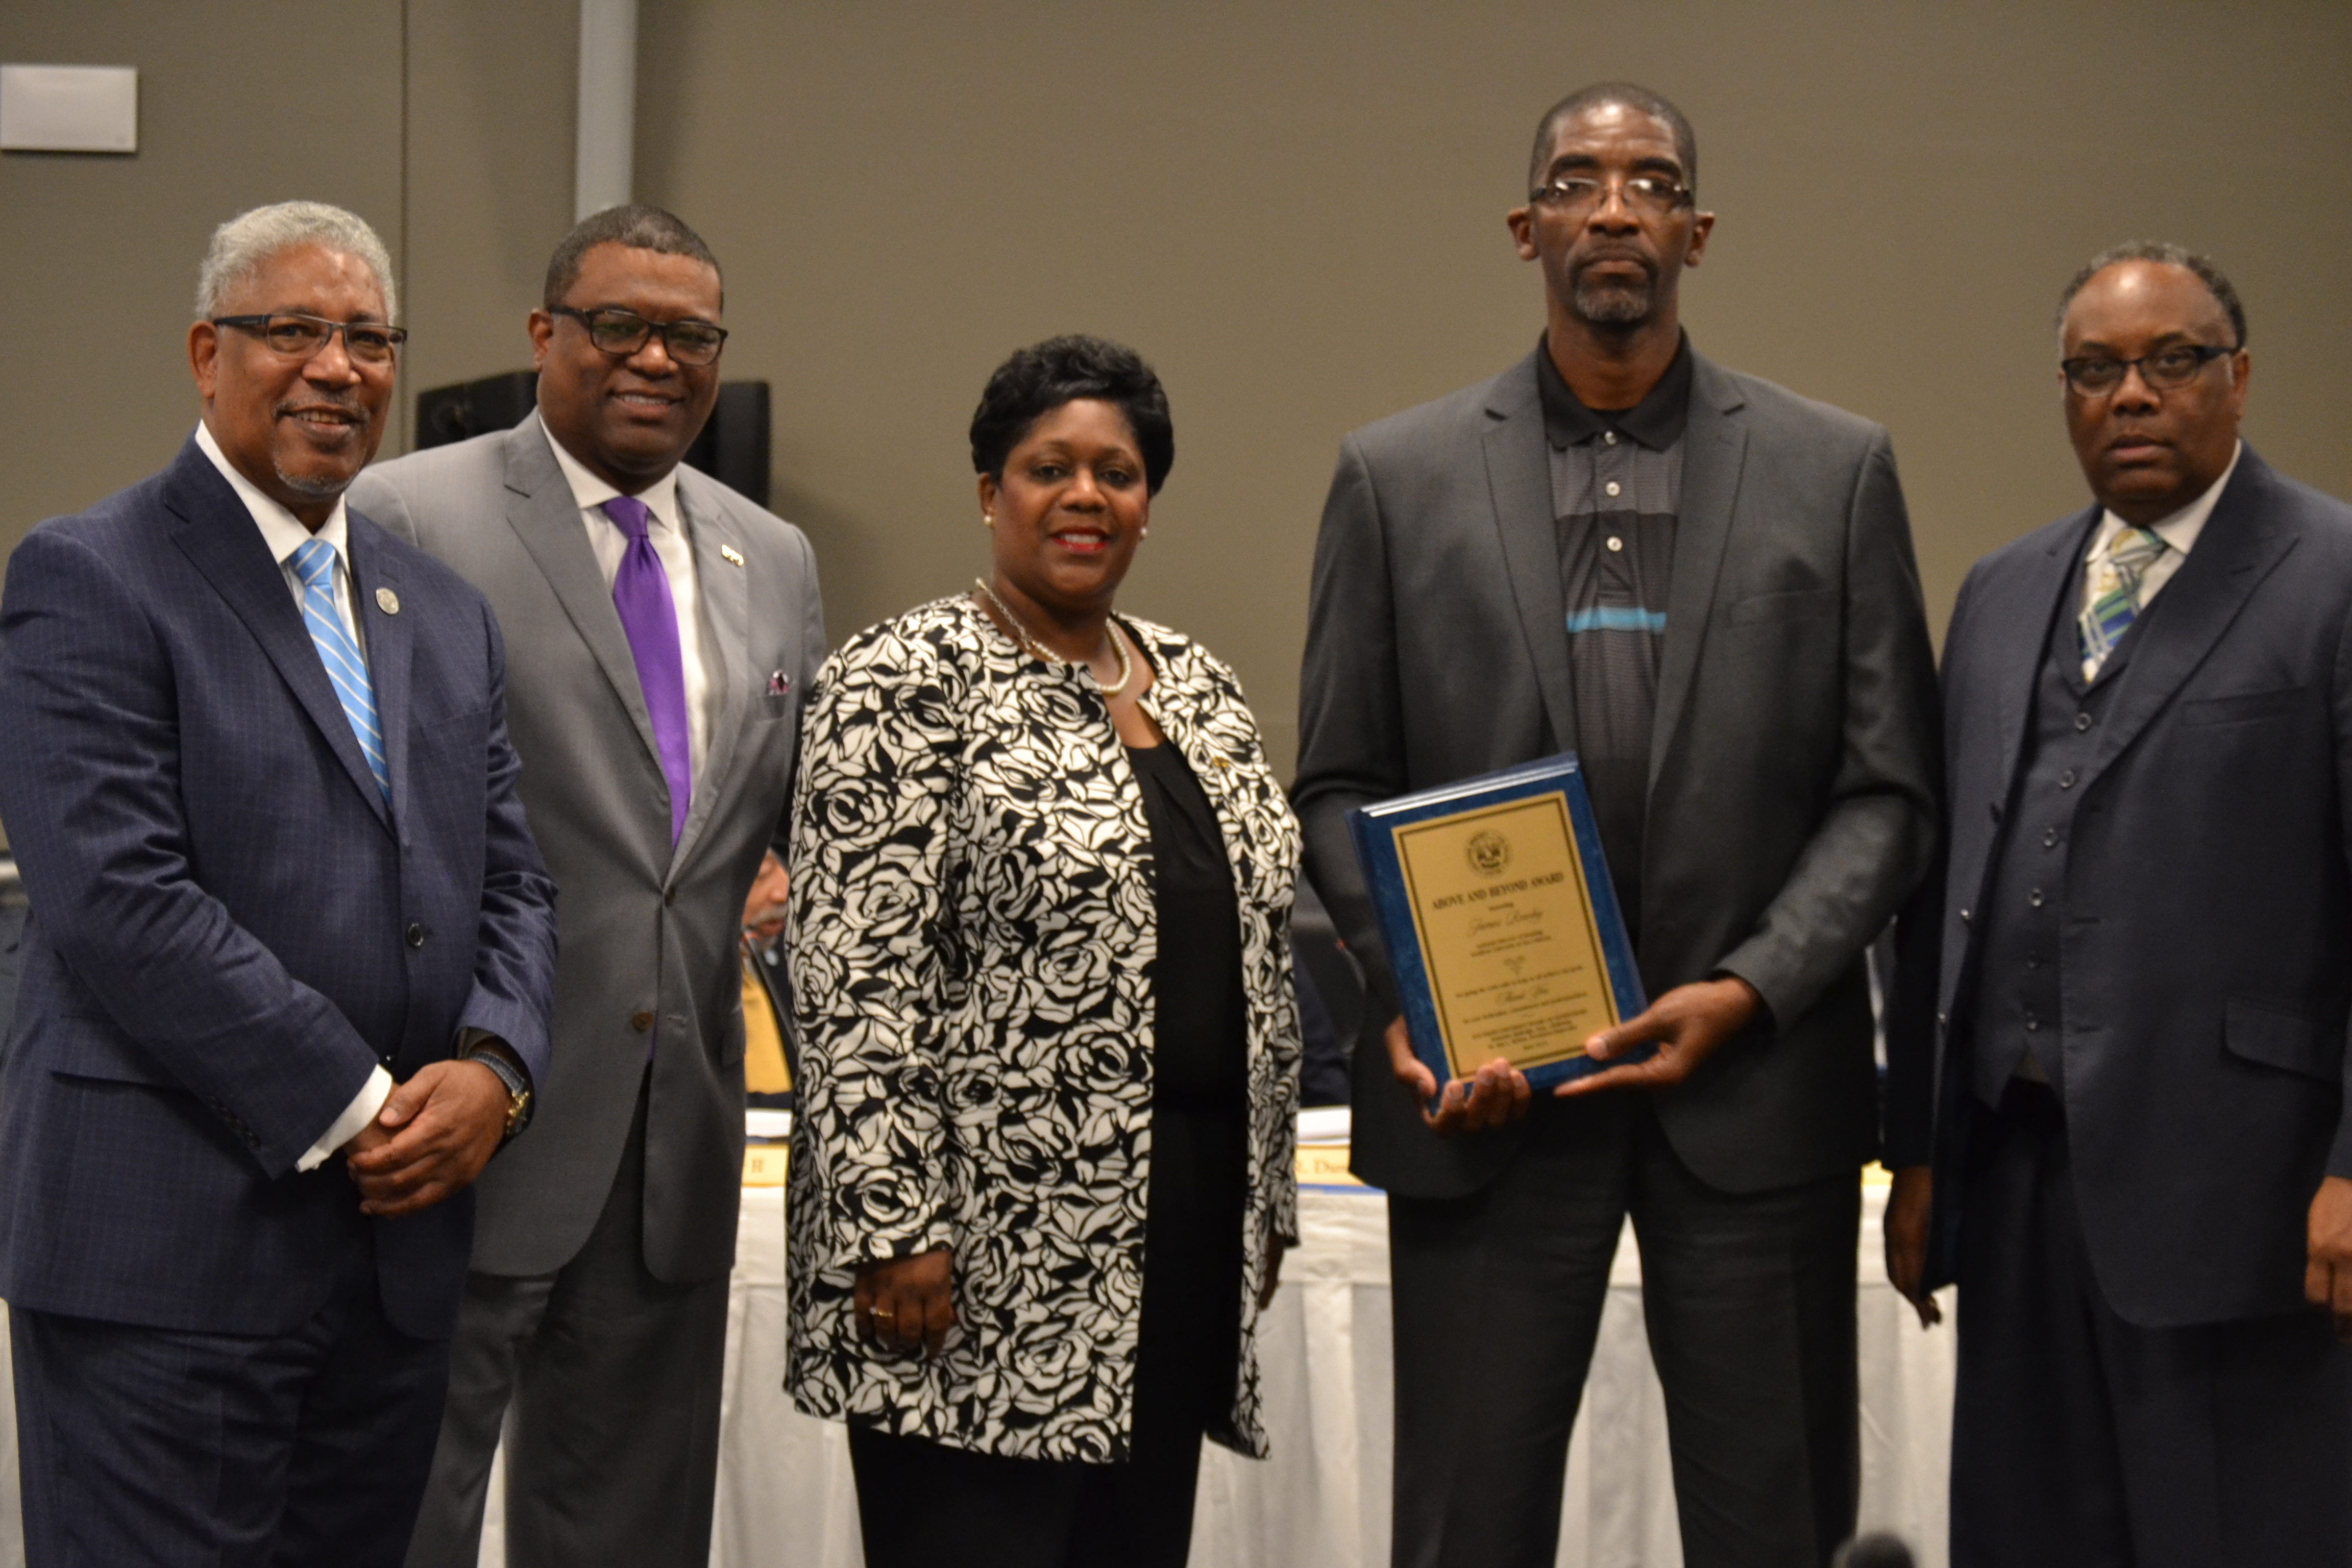 SU President-Chancellor Ray Belton, SUS Board Chair Demoine D. Rutledge, SUNO Chancellor Lisa Mims-Devezin,  'Above and Beyond' Award Recipient James Rowley, and SUS Board Member Samuel C. Tolbert Jr.